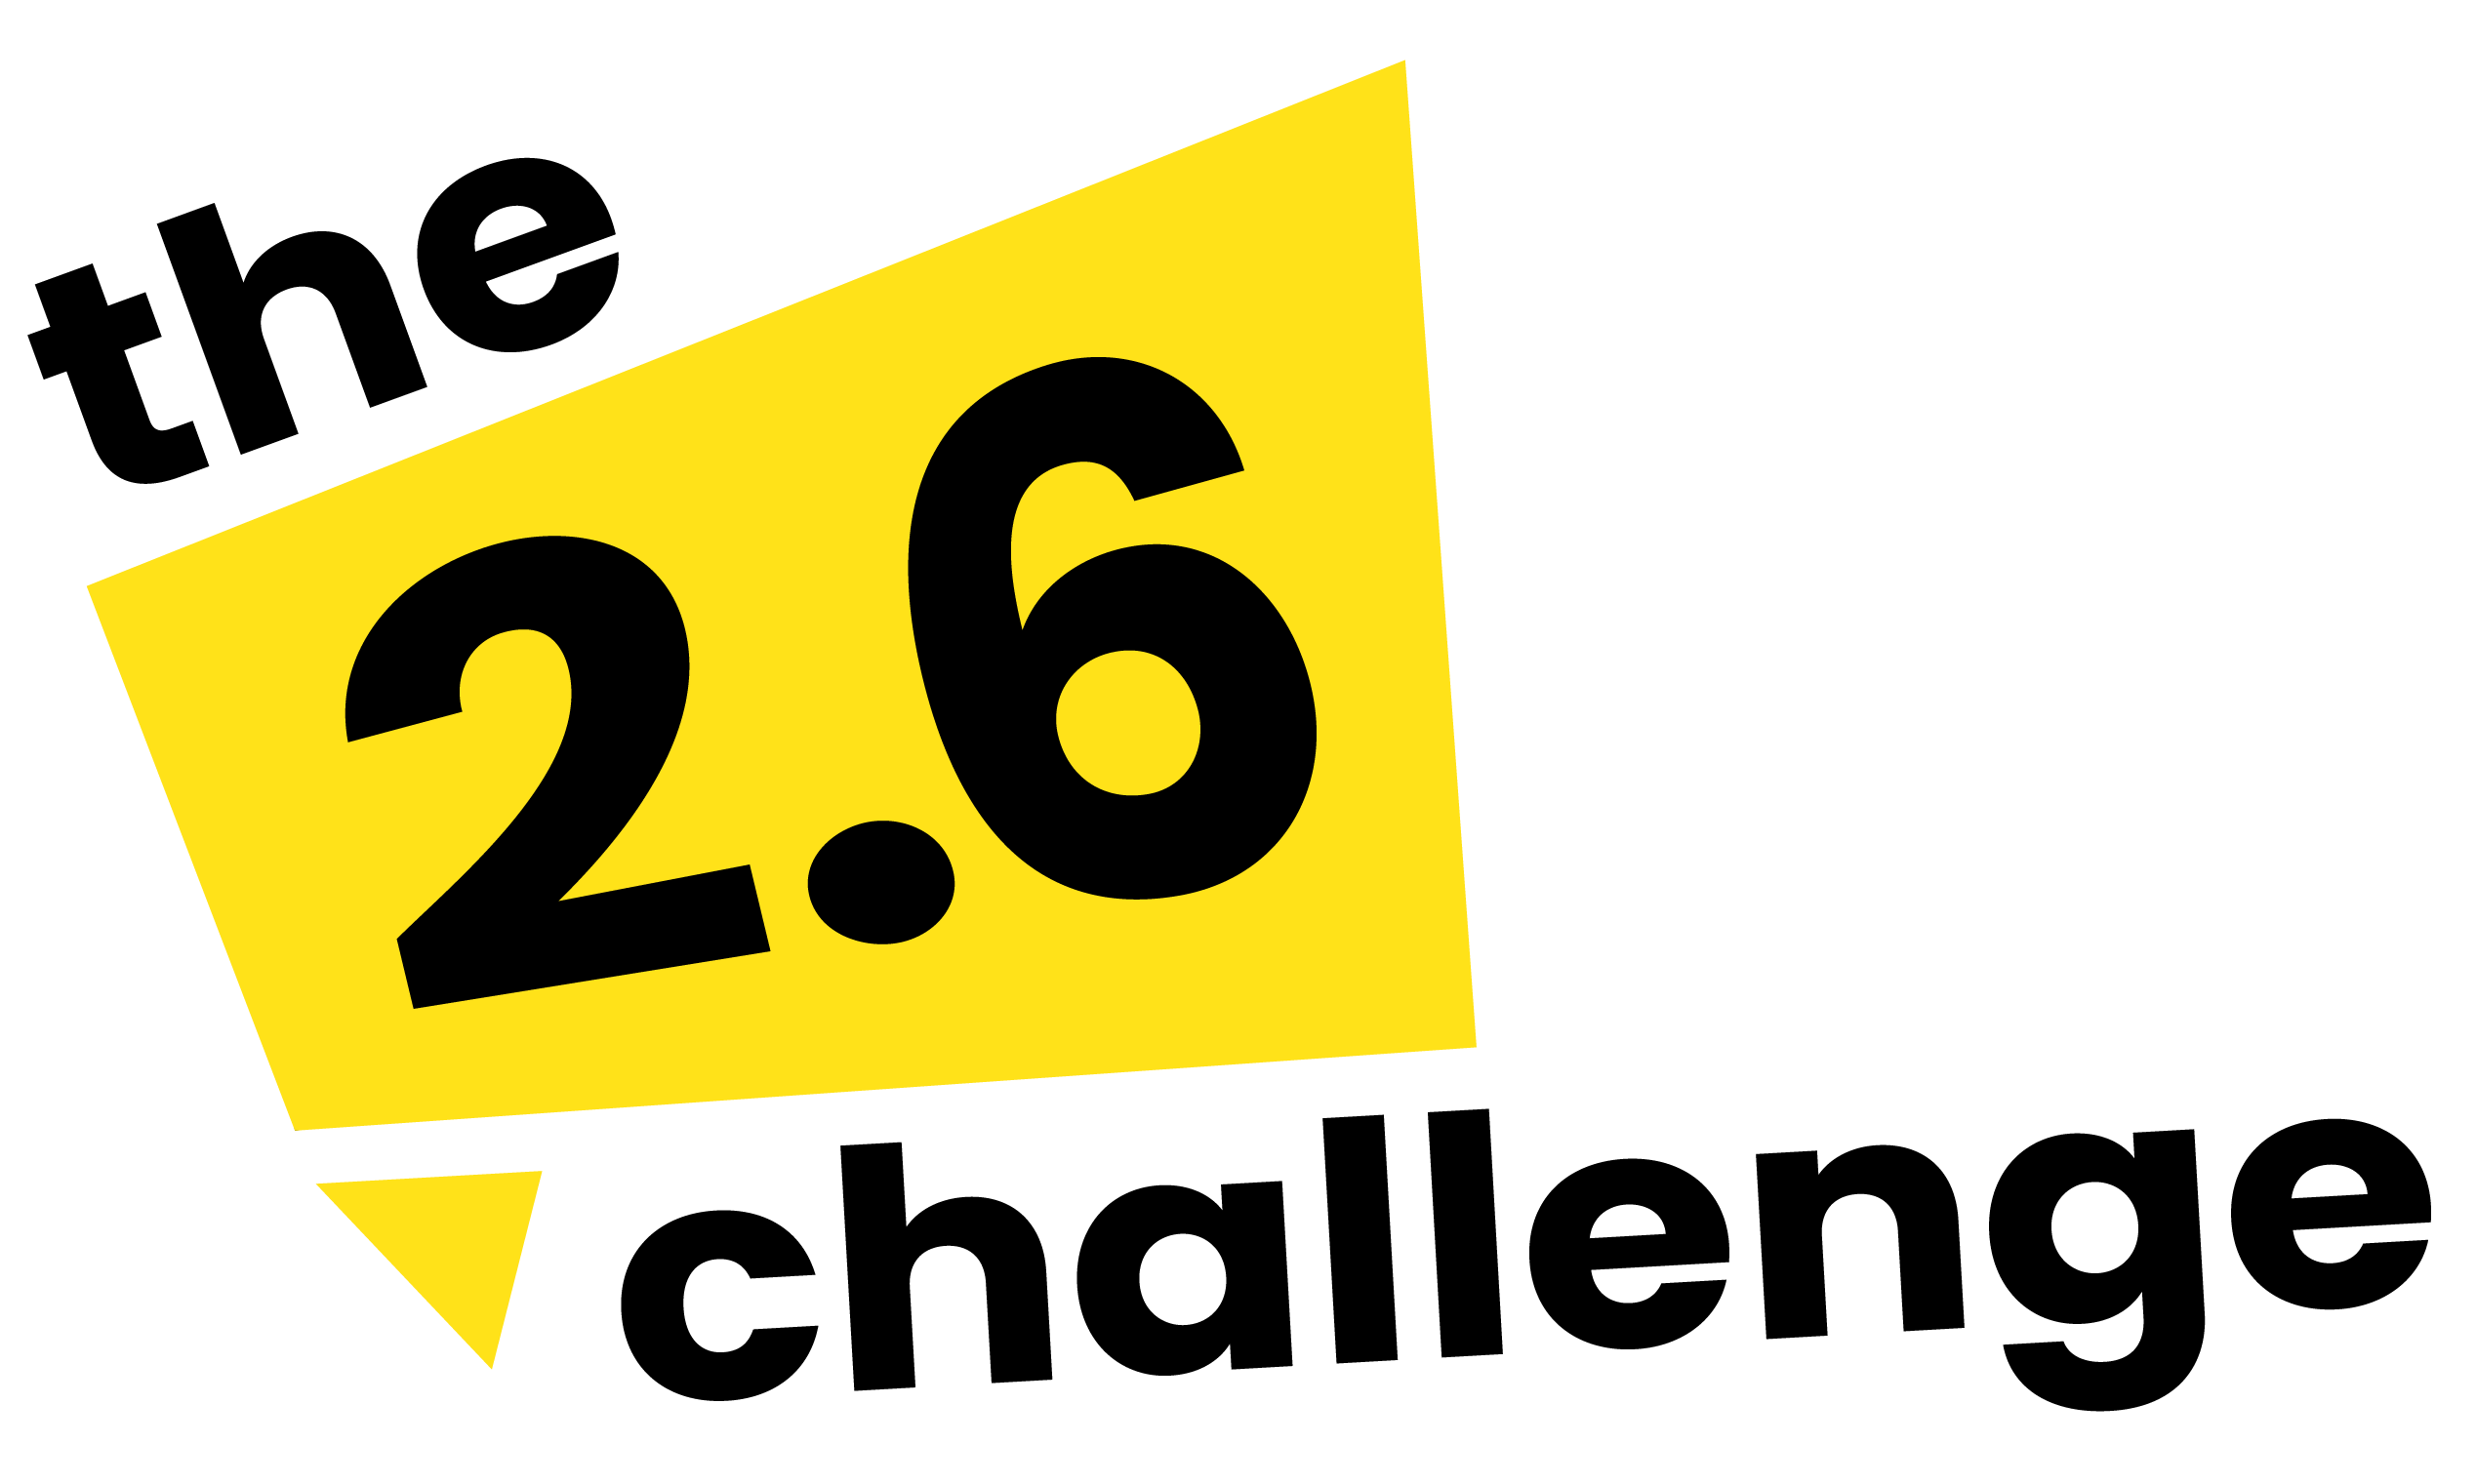 We're taking part in the 2.6 challenge!